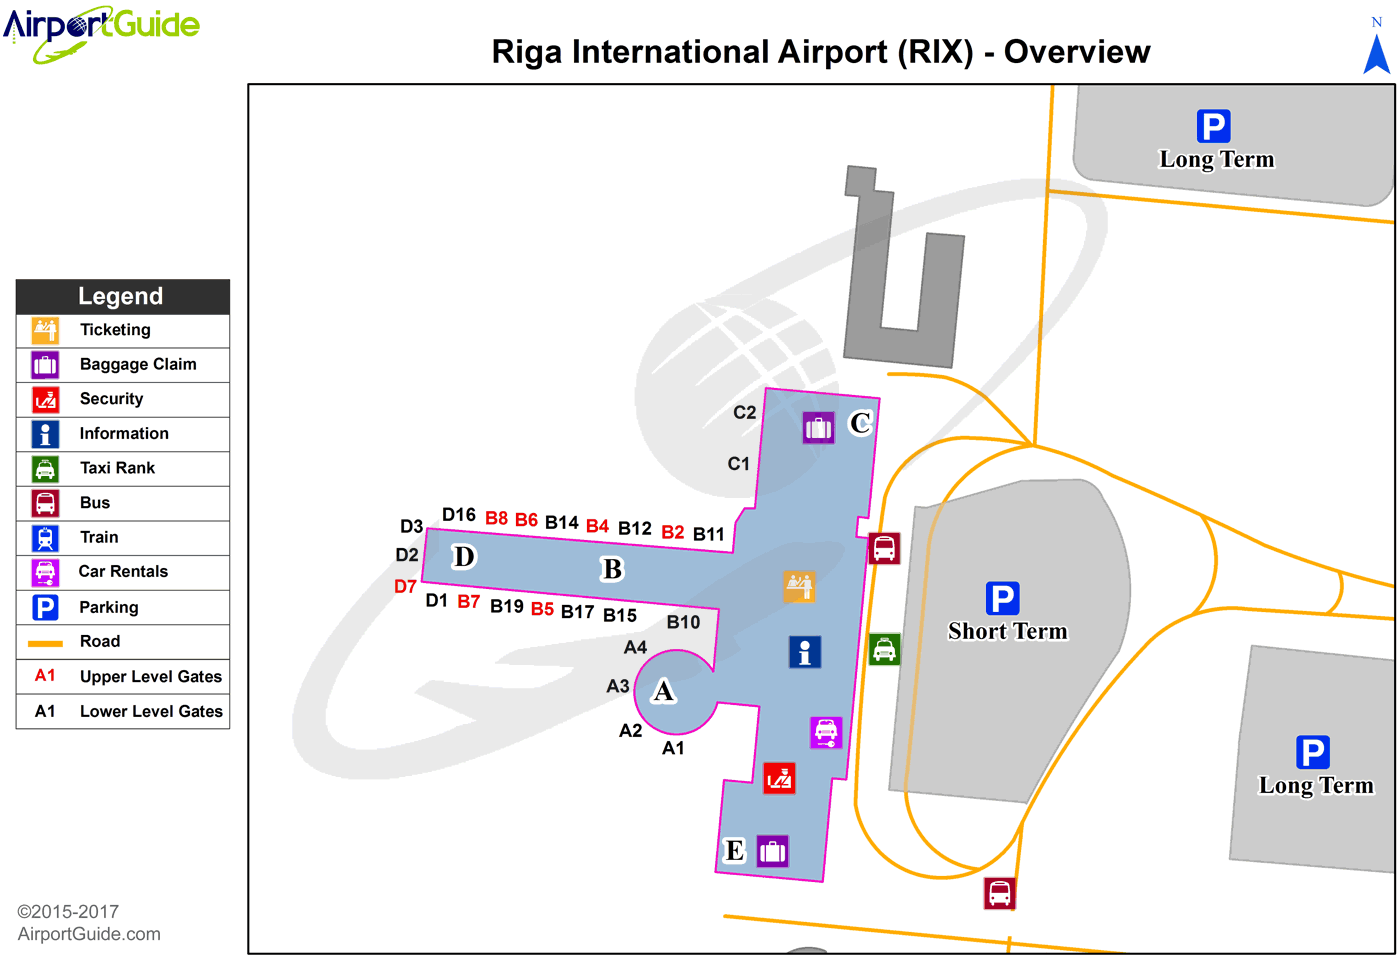 Riga - Riga International (RIX) Airport Terminal Map - Overview